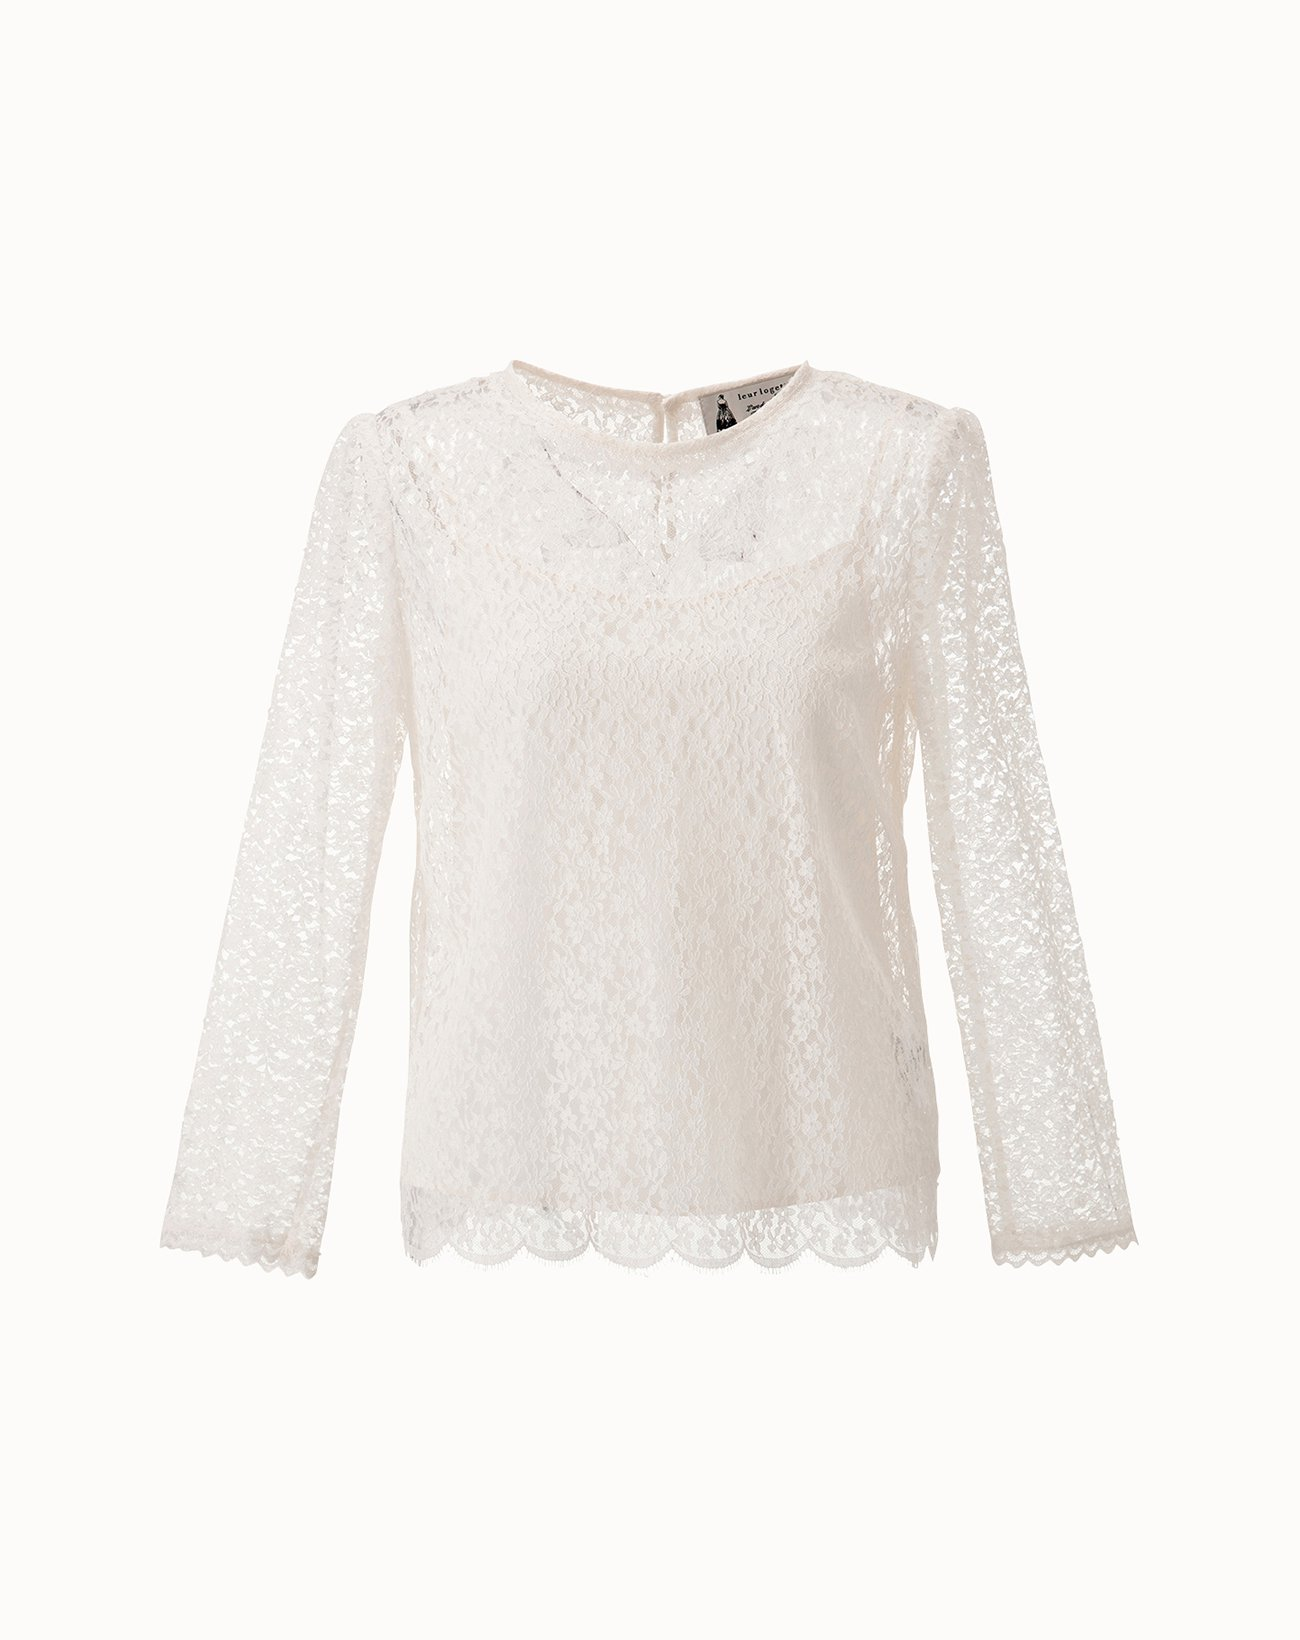 Lace Blouse - Off White